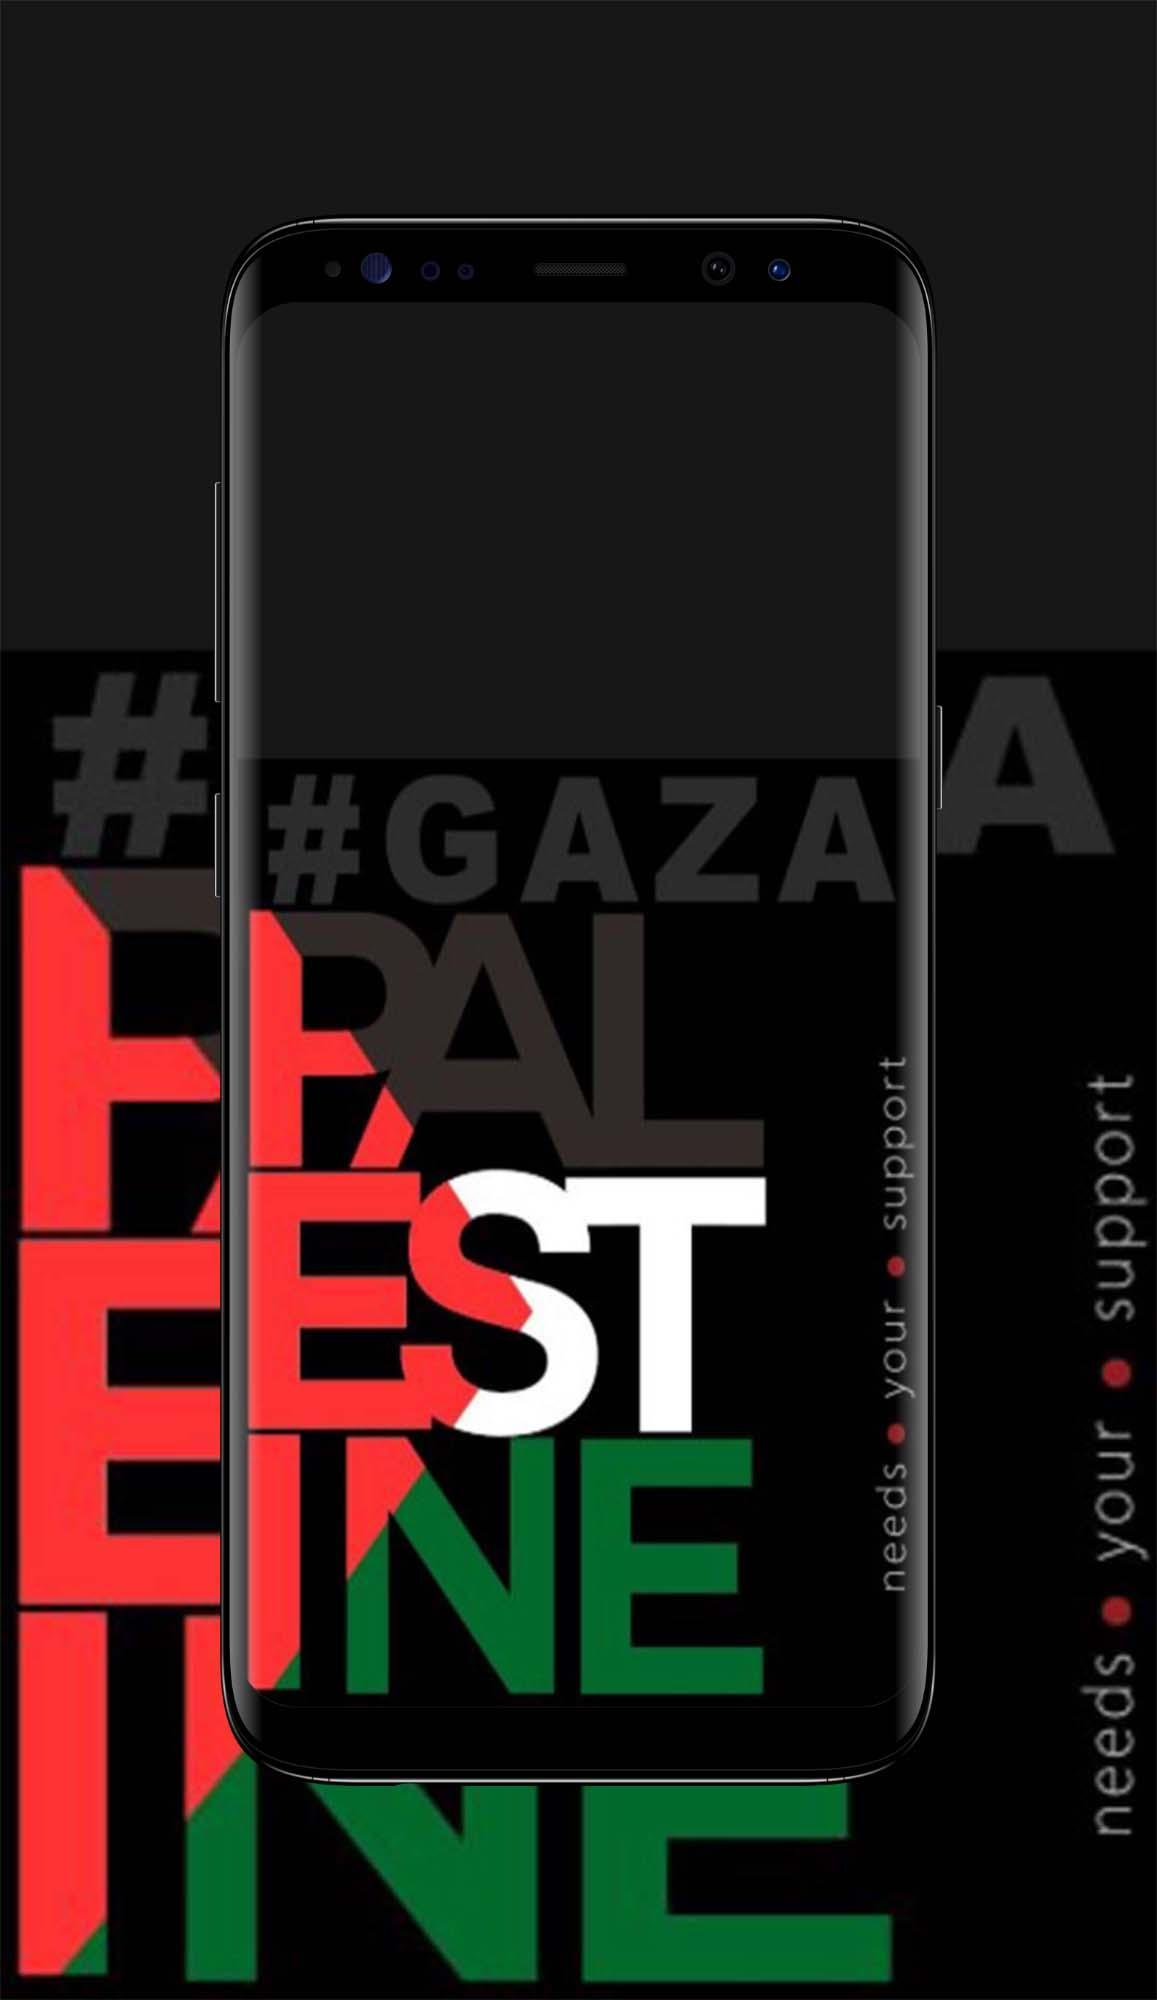 Palestine Wallpaper Hd For Android Apk Download